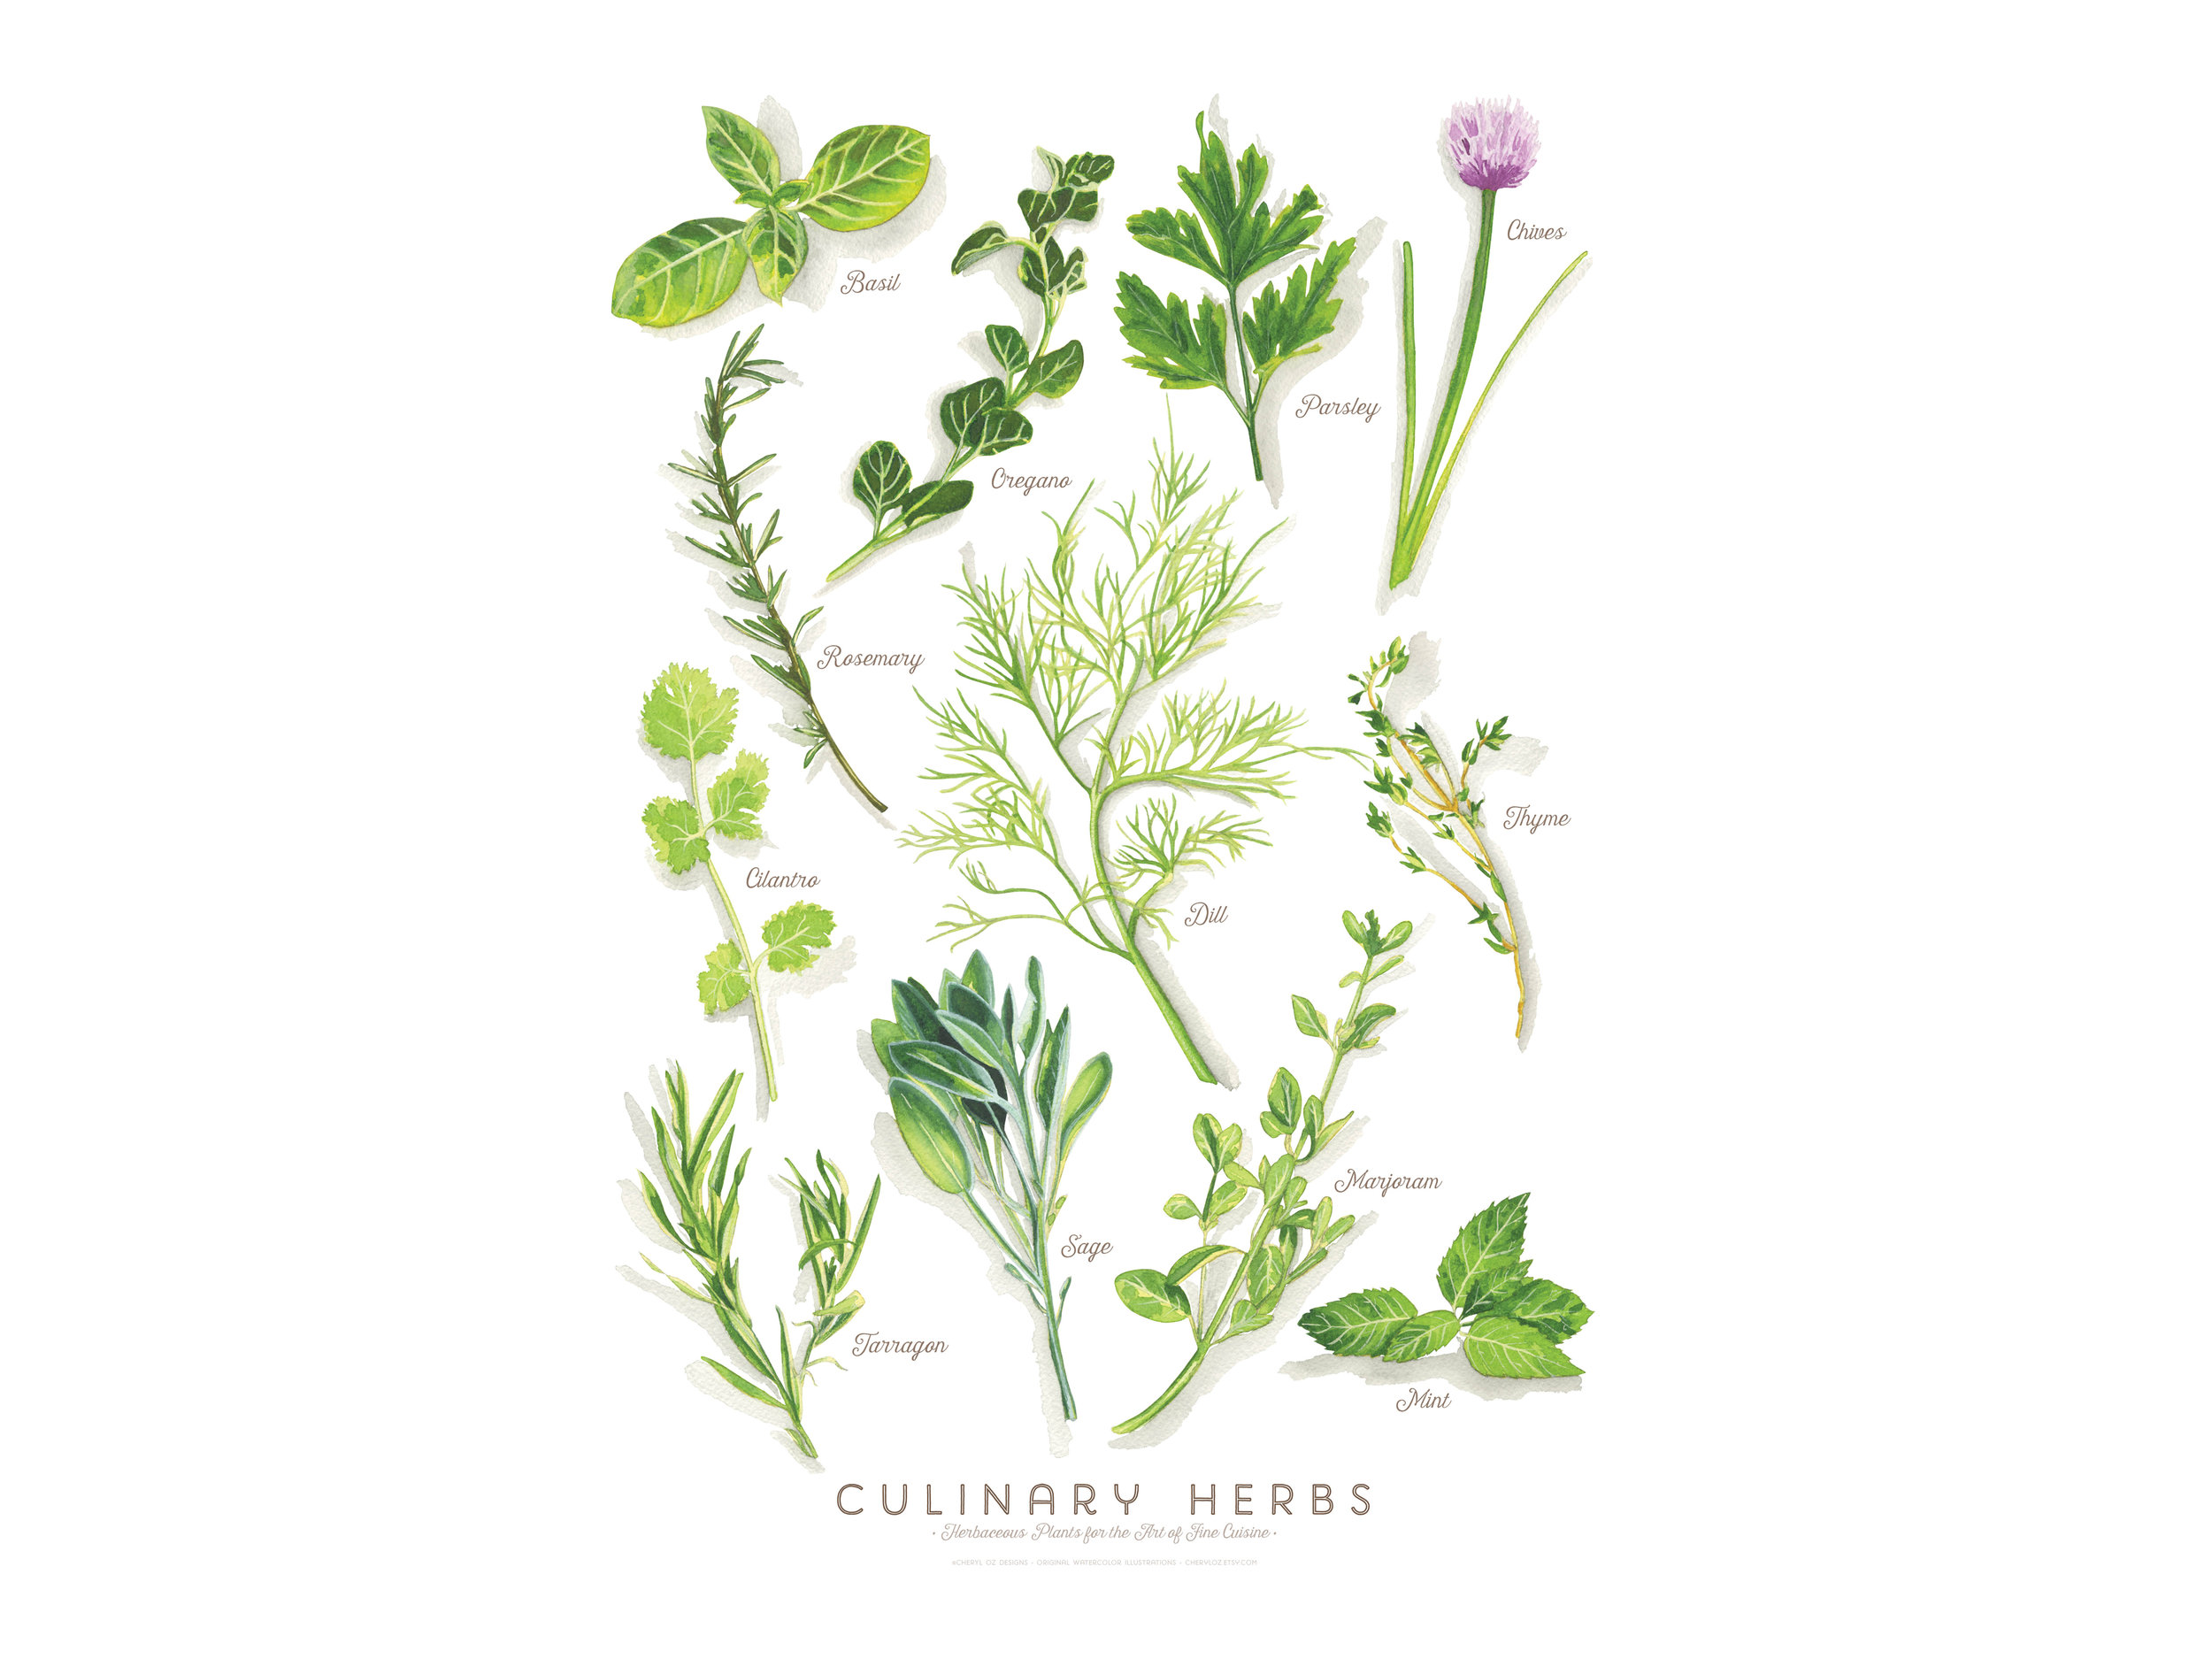 Culinary Herbs Poster/Print Design